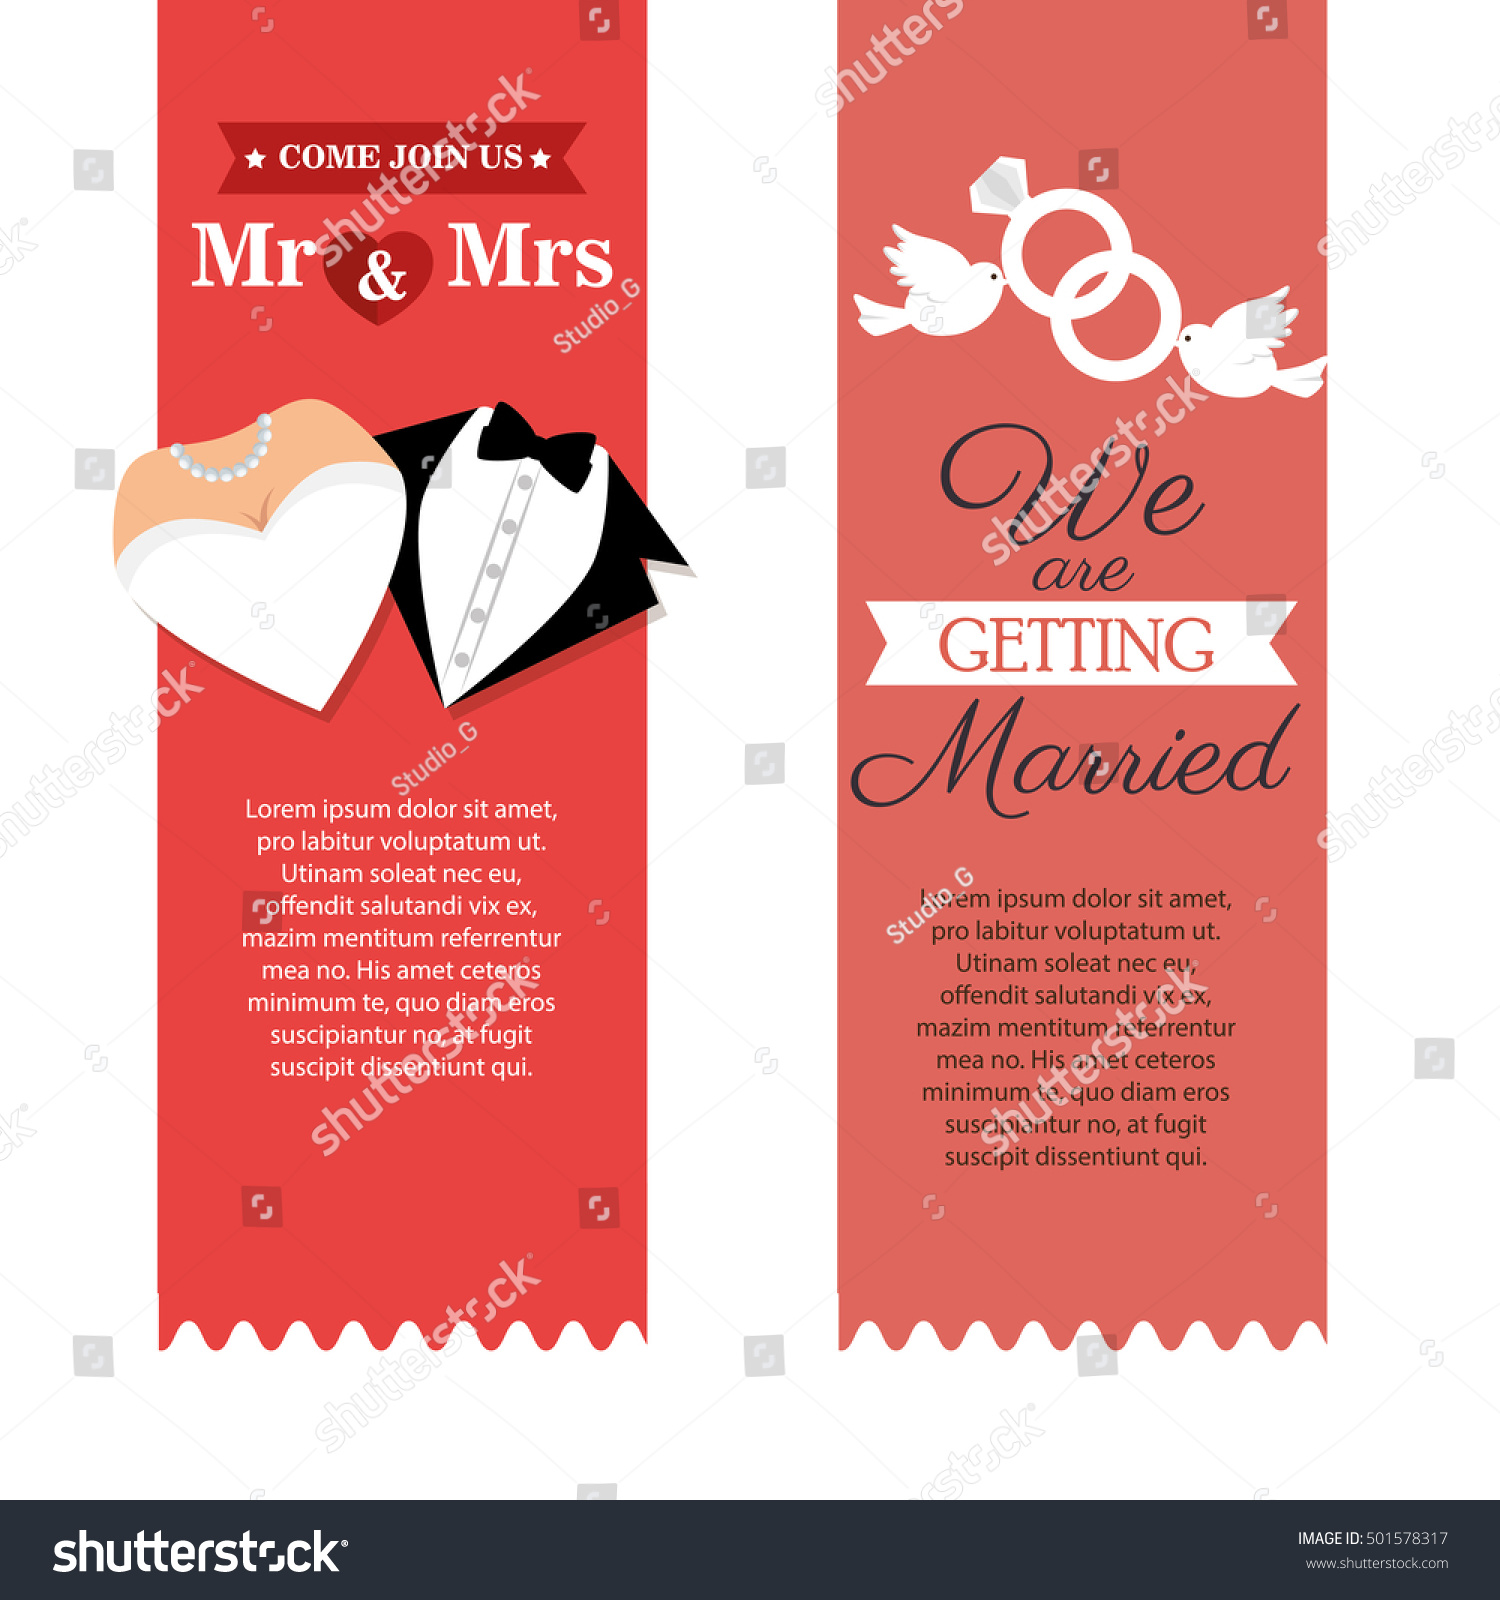 Enchanting Wedding Bible Verses For Invitations Crest - Invitation ...